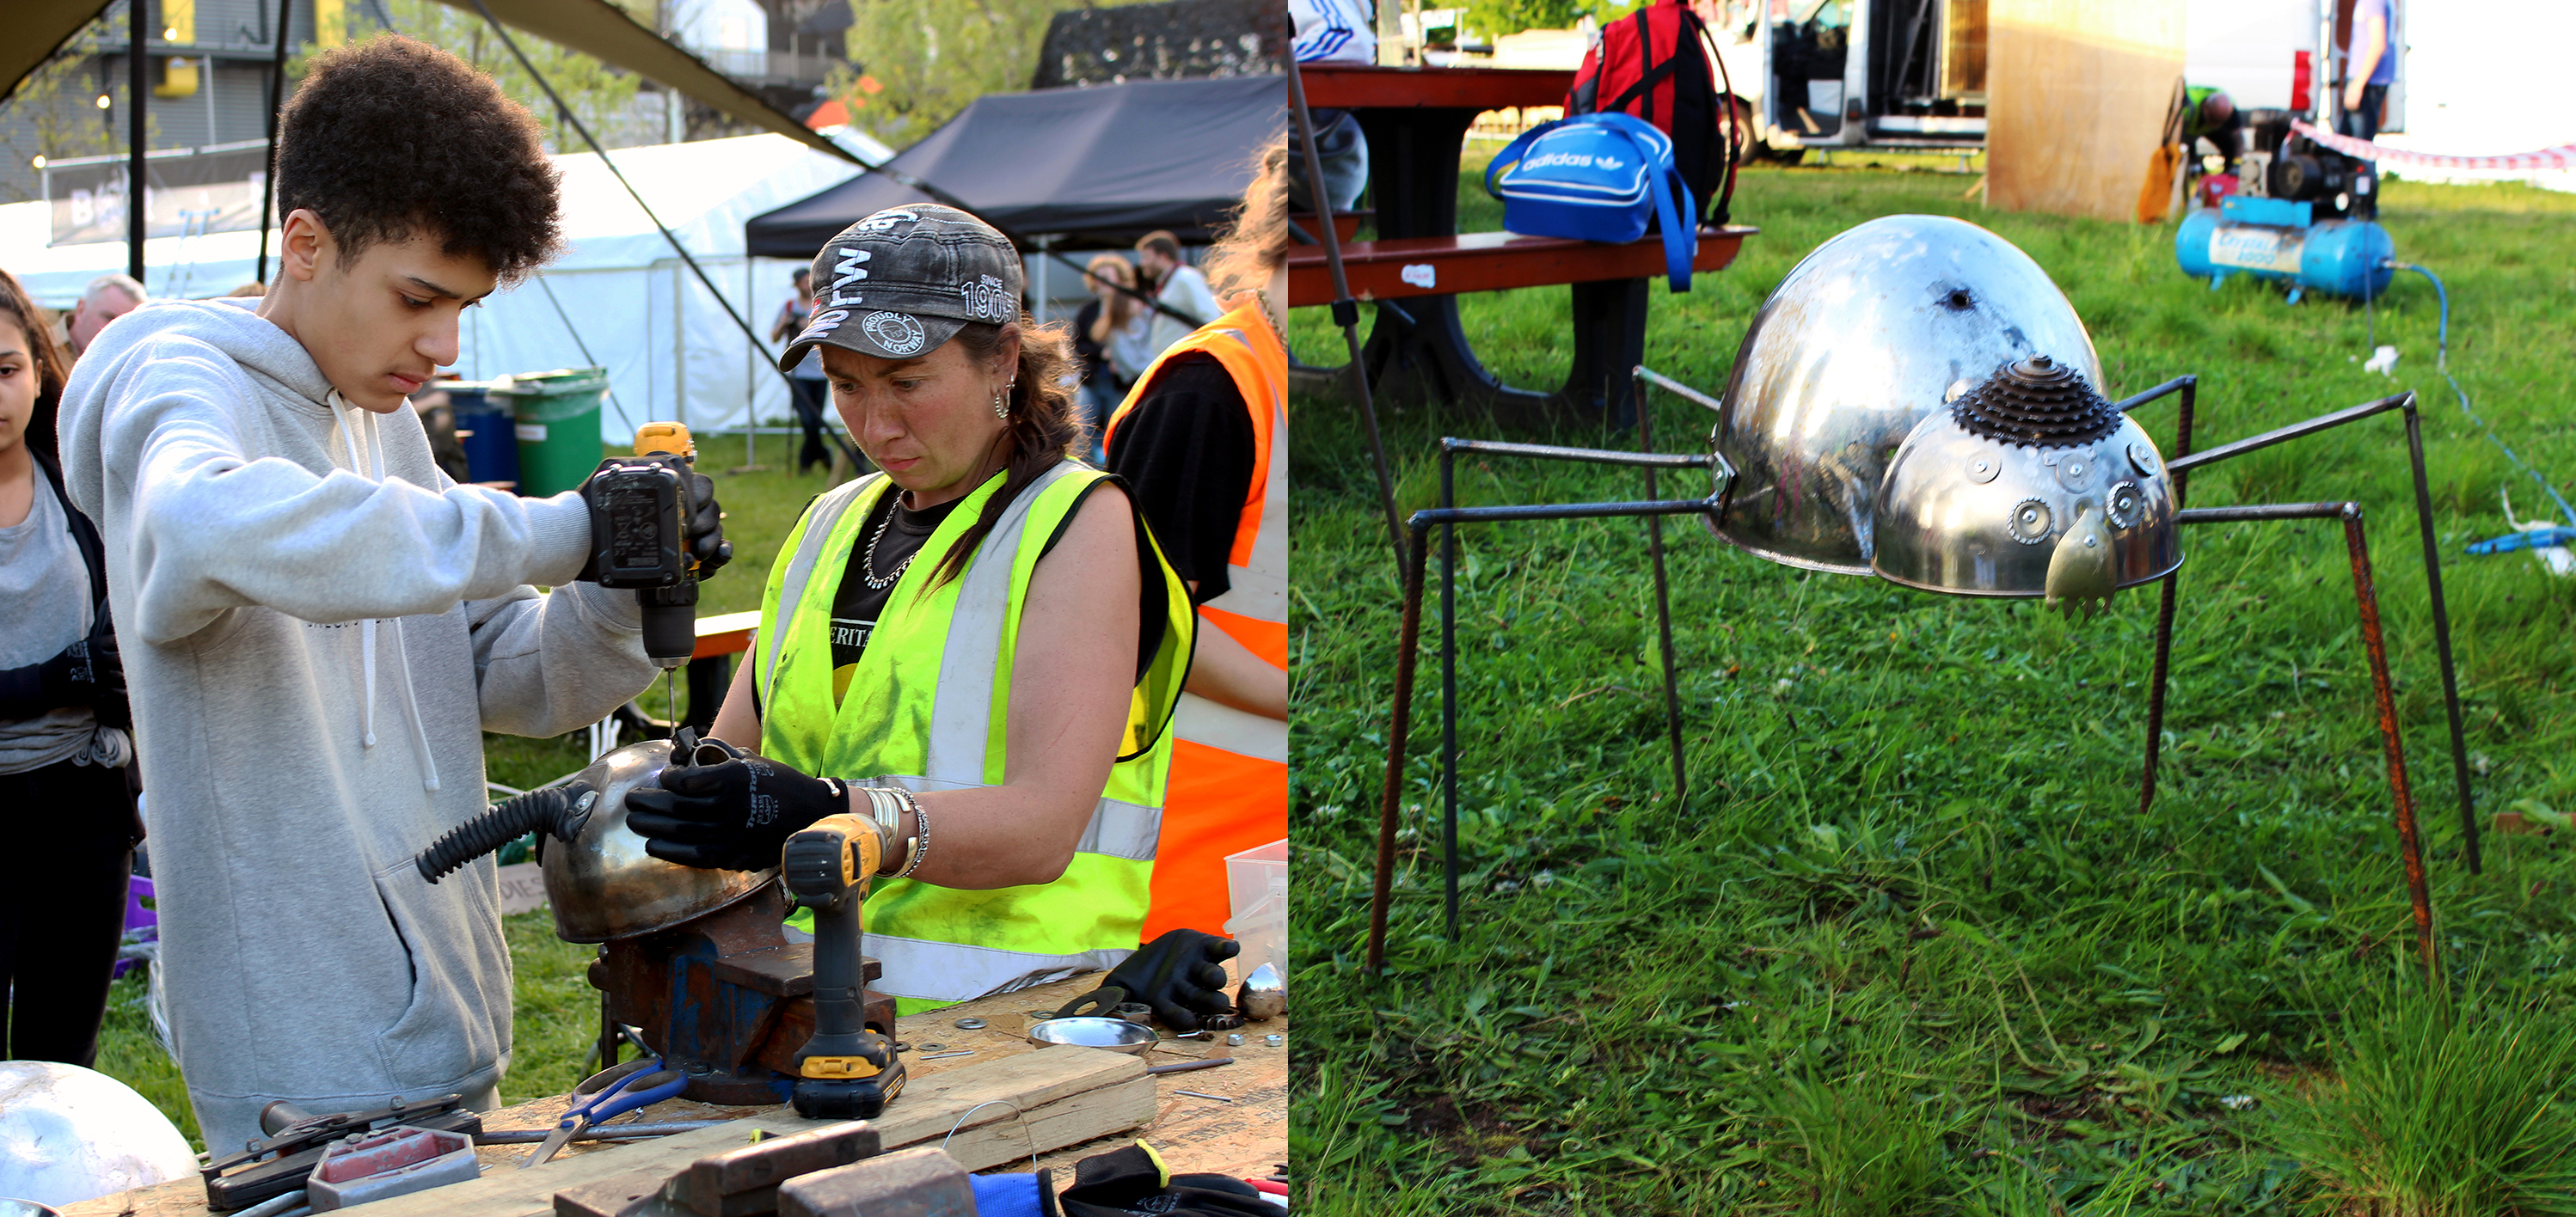 Two images combined. The left image is of a volunteer in high visibility clothes assisting a participant to drill in a new attachment to the insect. The right is of a metal insect created by participants with six legs and eyes standing on grass.